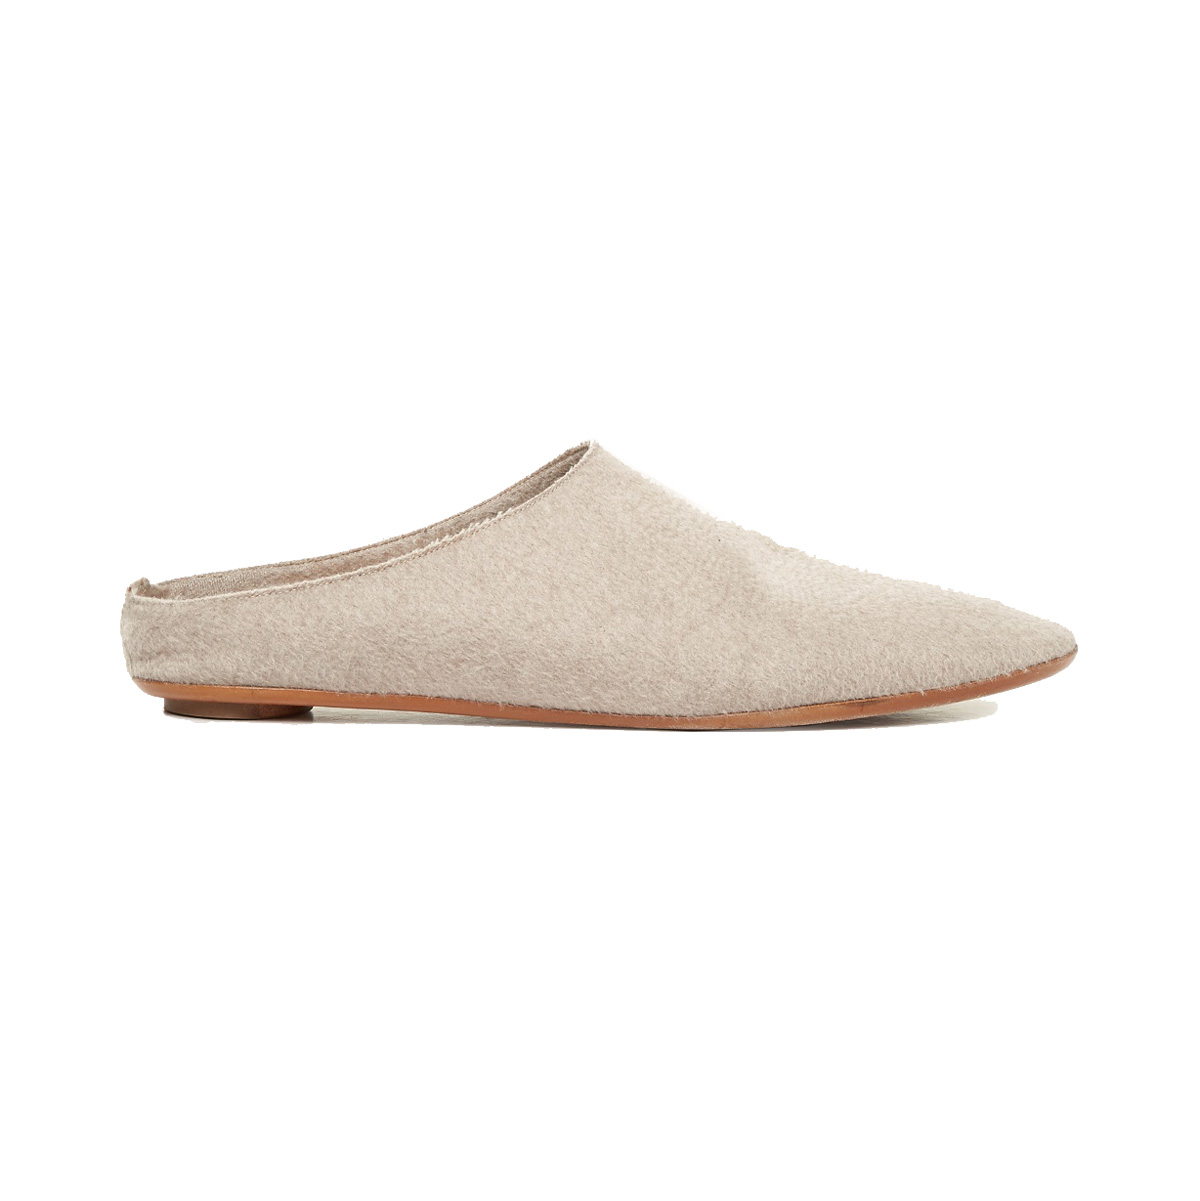 Shop 12 Fancy and Festive Slippers That Are On Trend ...